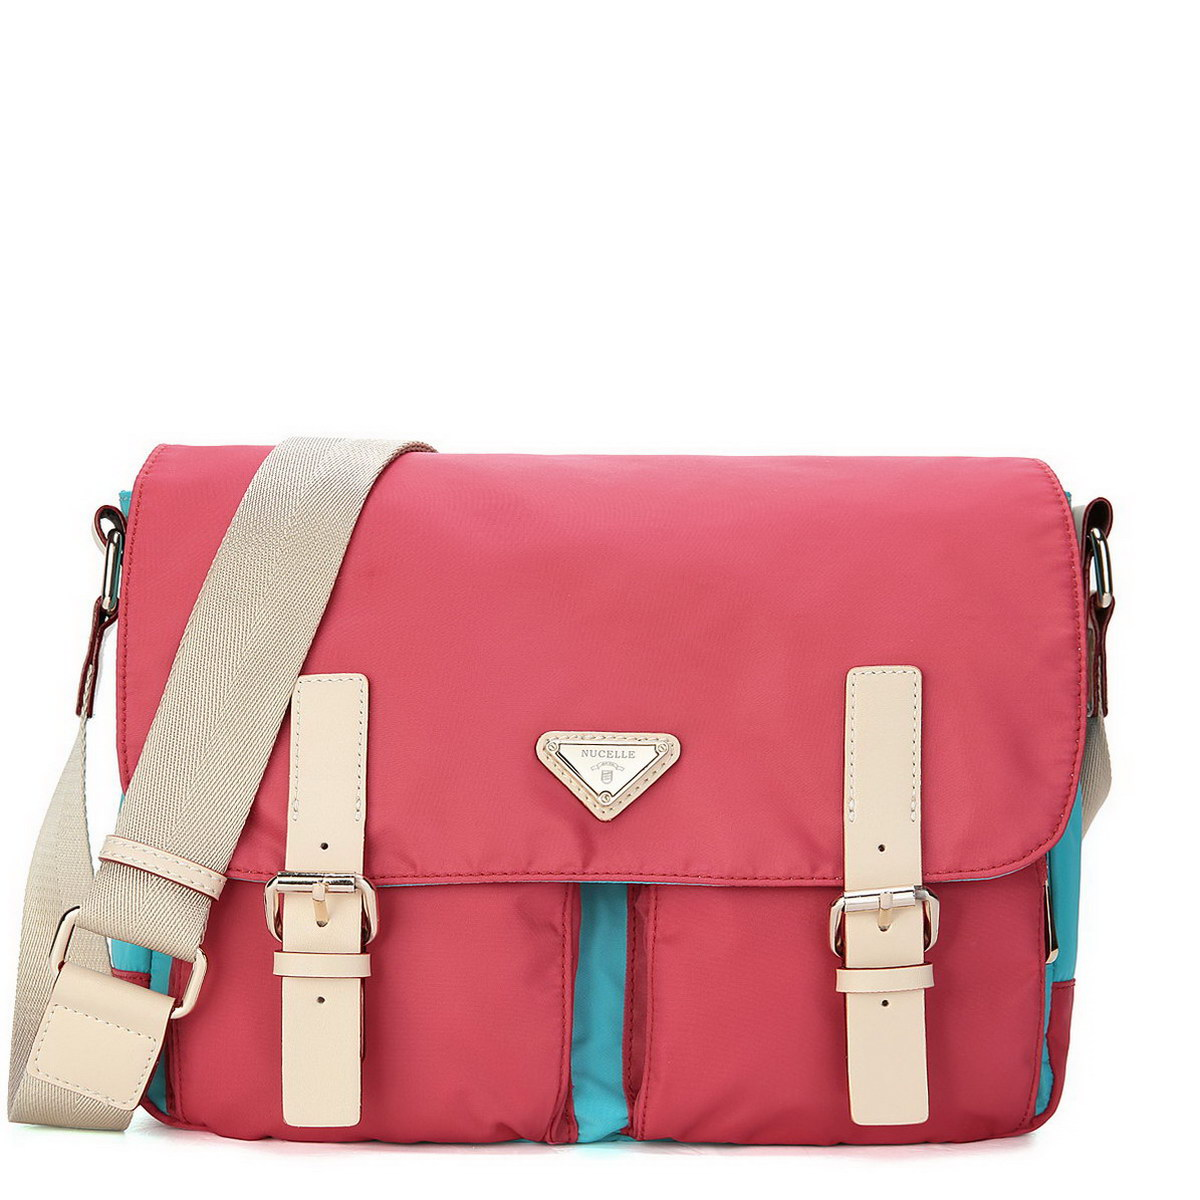 Target Messenger Bags For Girls